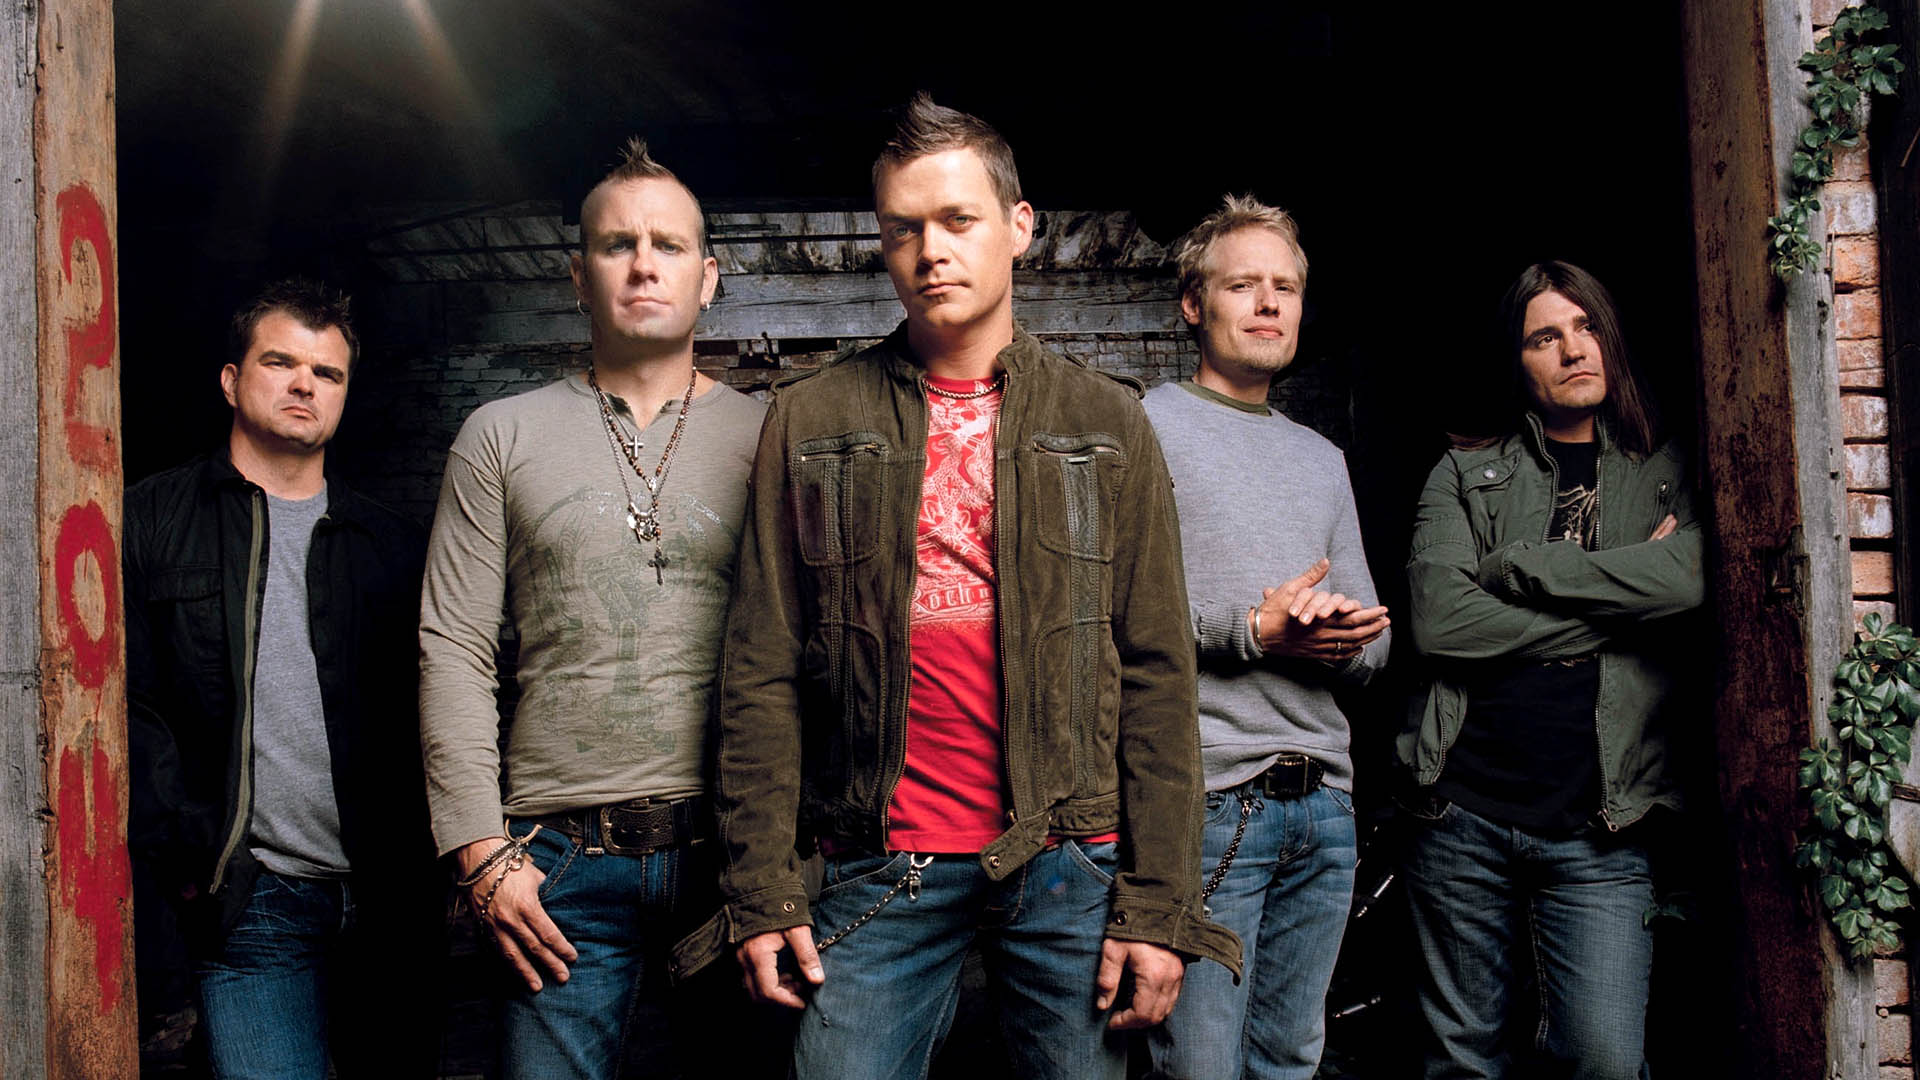 3 Doors Down Presale Passwords  sc 1 st  Ticket Crusader & 3 Doors Down Presale Passwords | Ticket Crusader